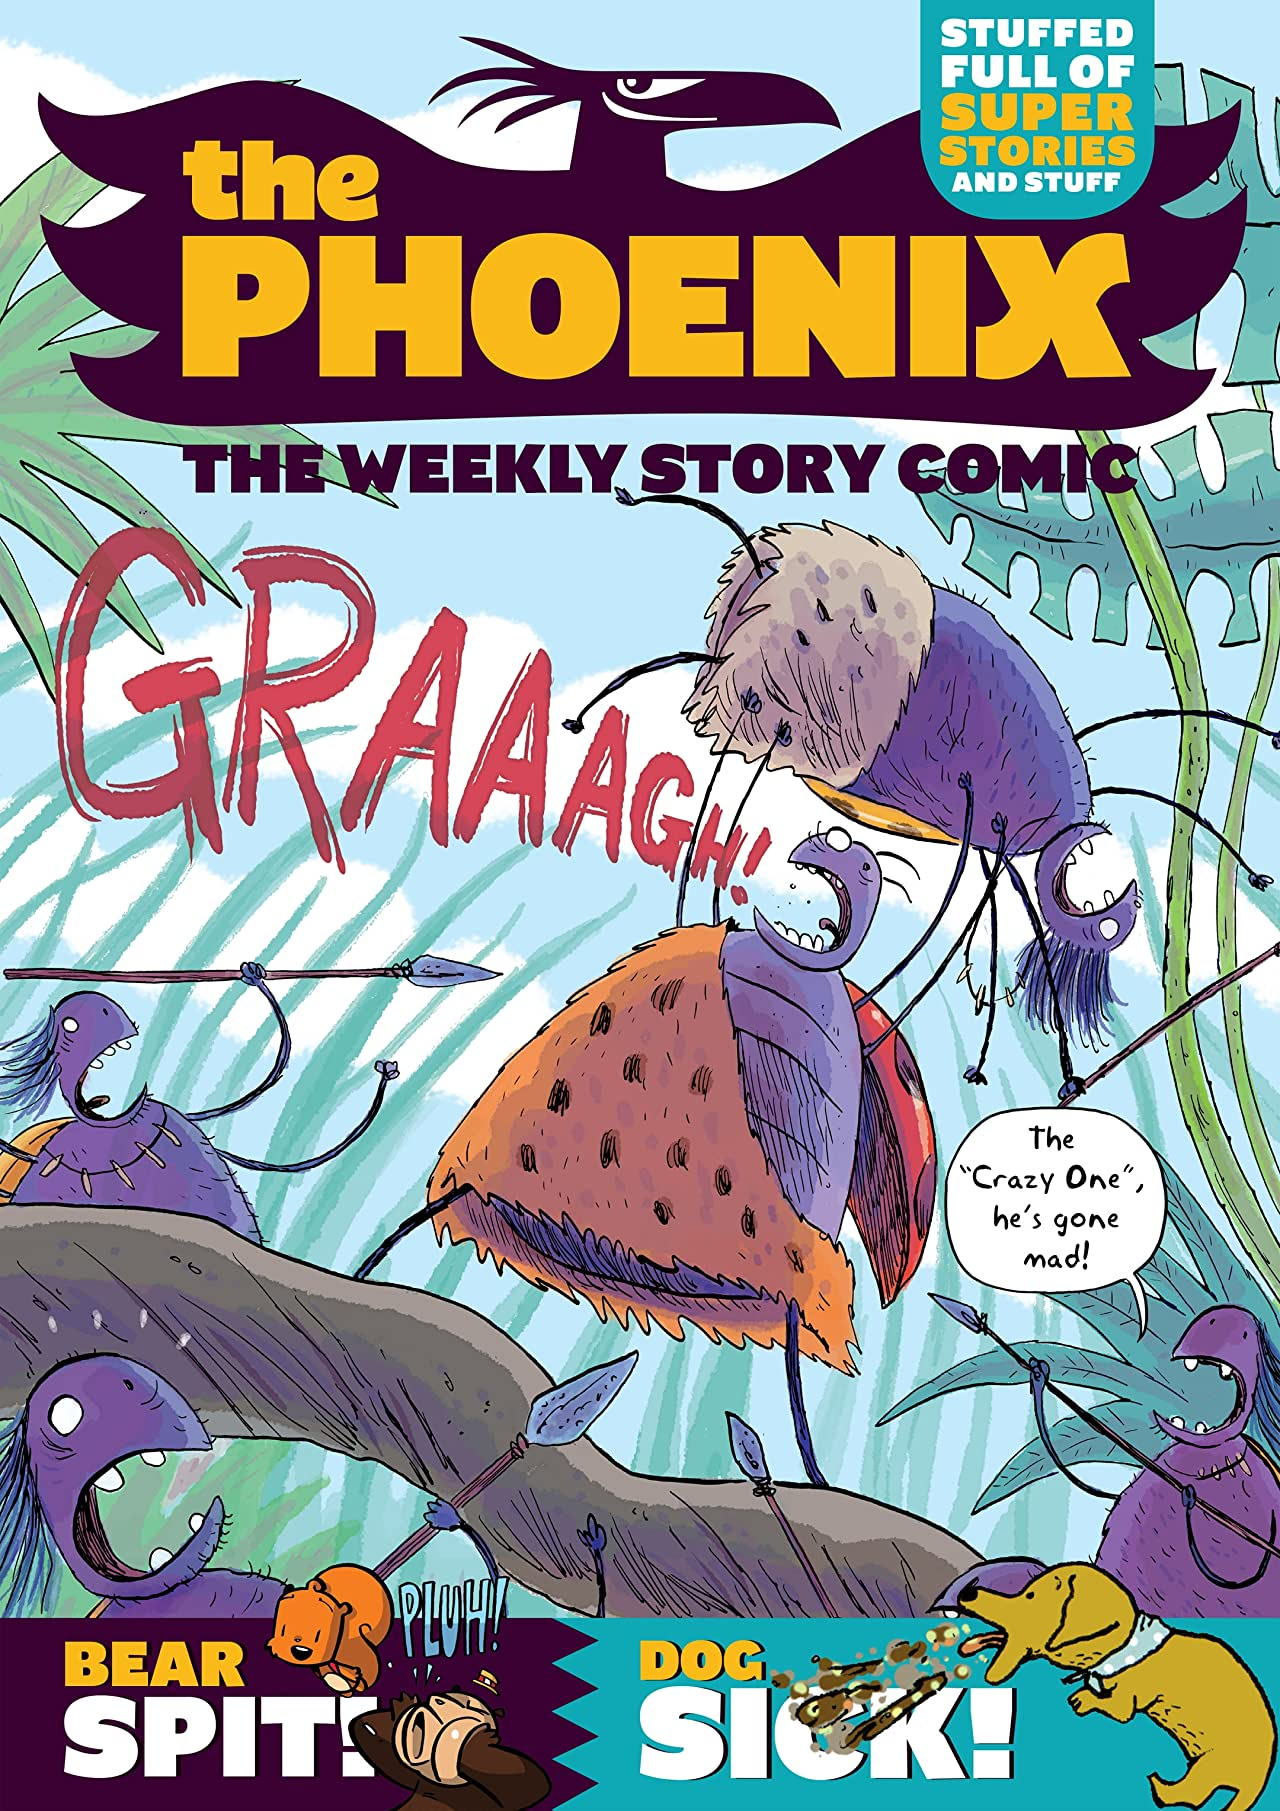 The Phoenix #77: The Weekly Story Comic